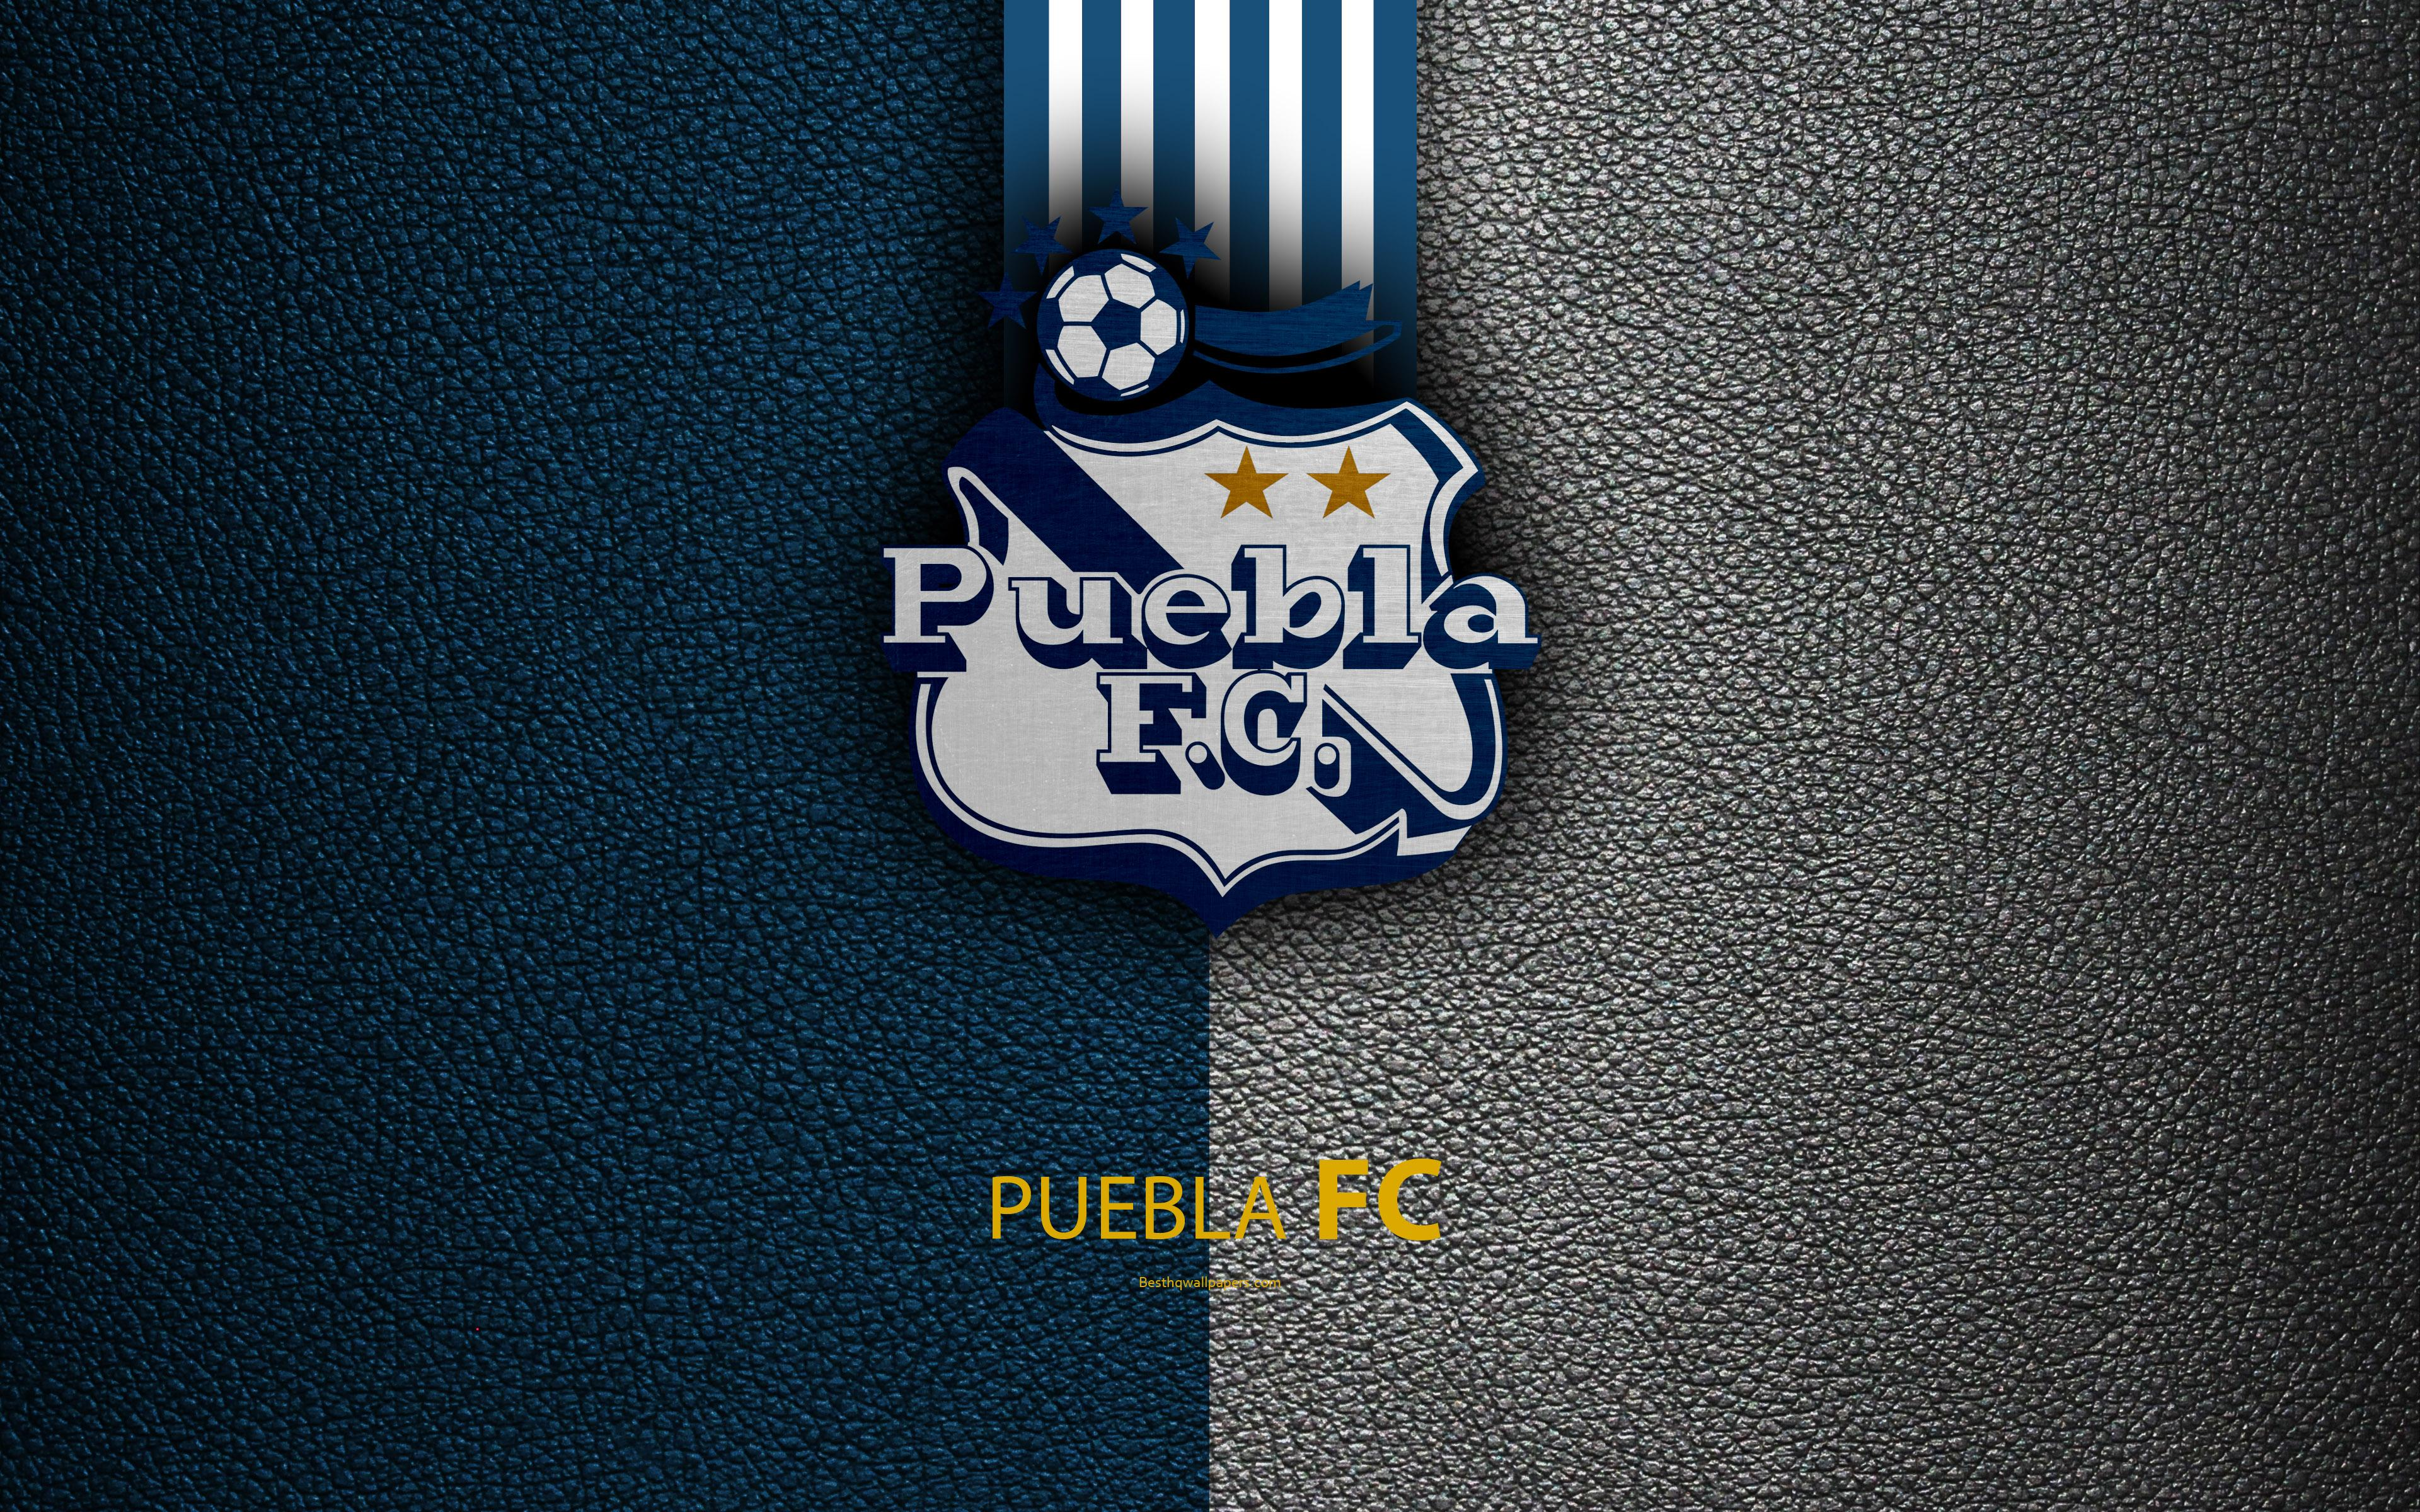 Download wallpapers Puebla FC, 4k, leather texture, logo, Mexican ...